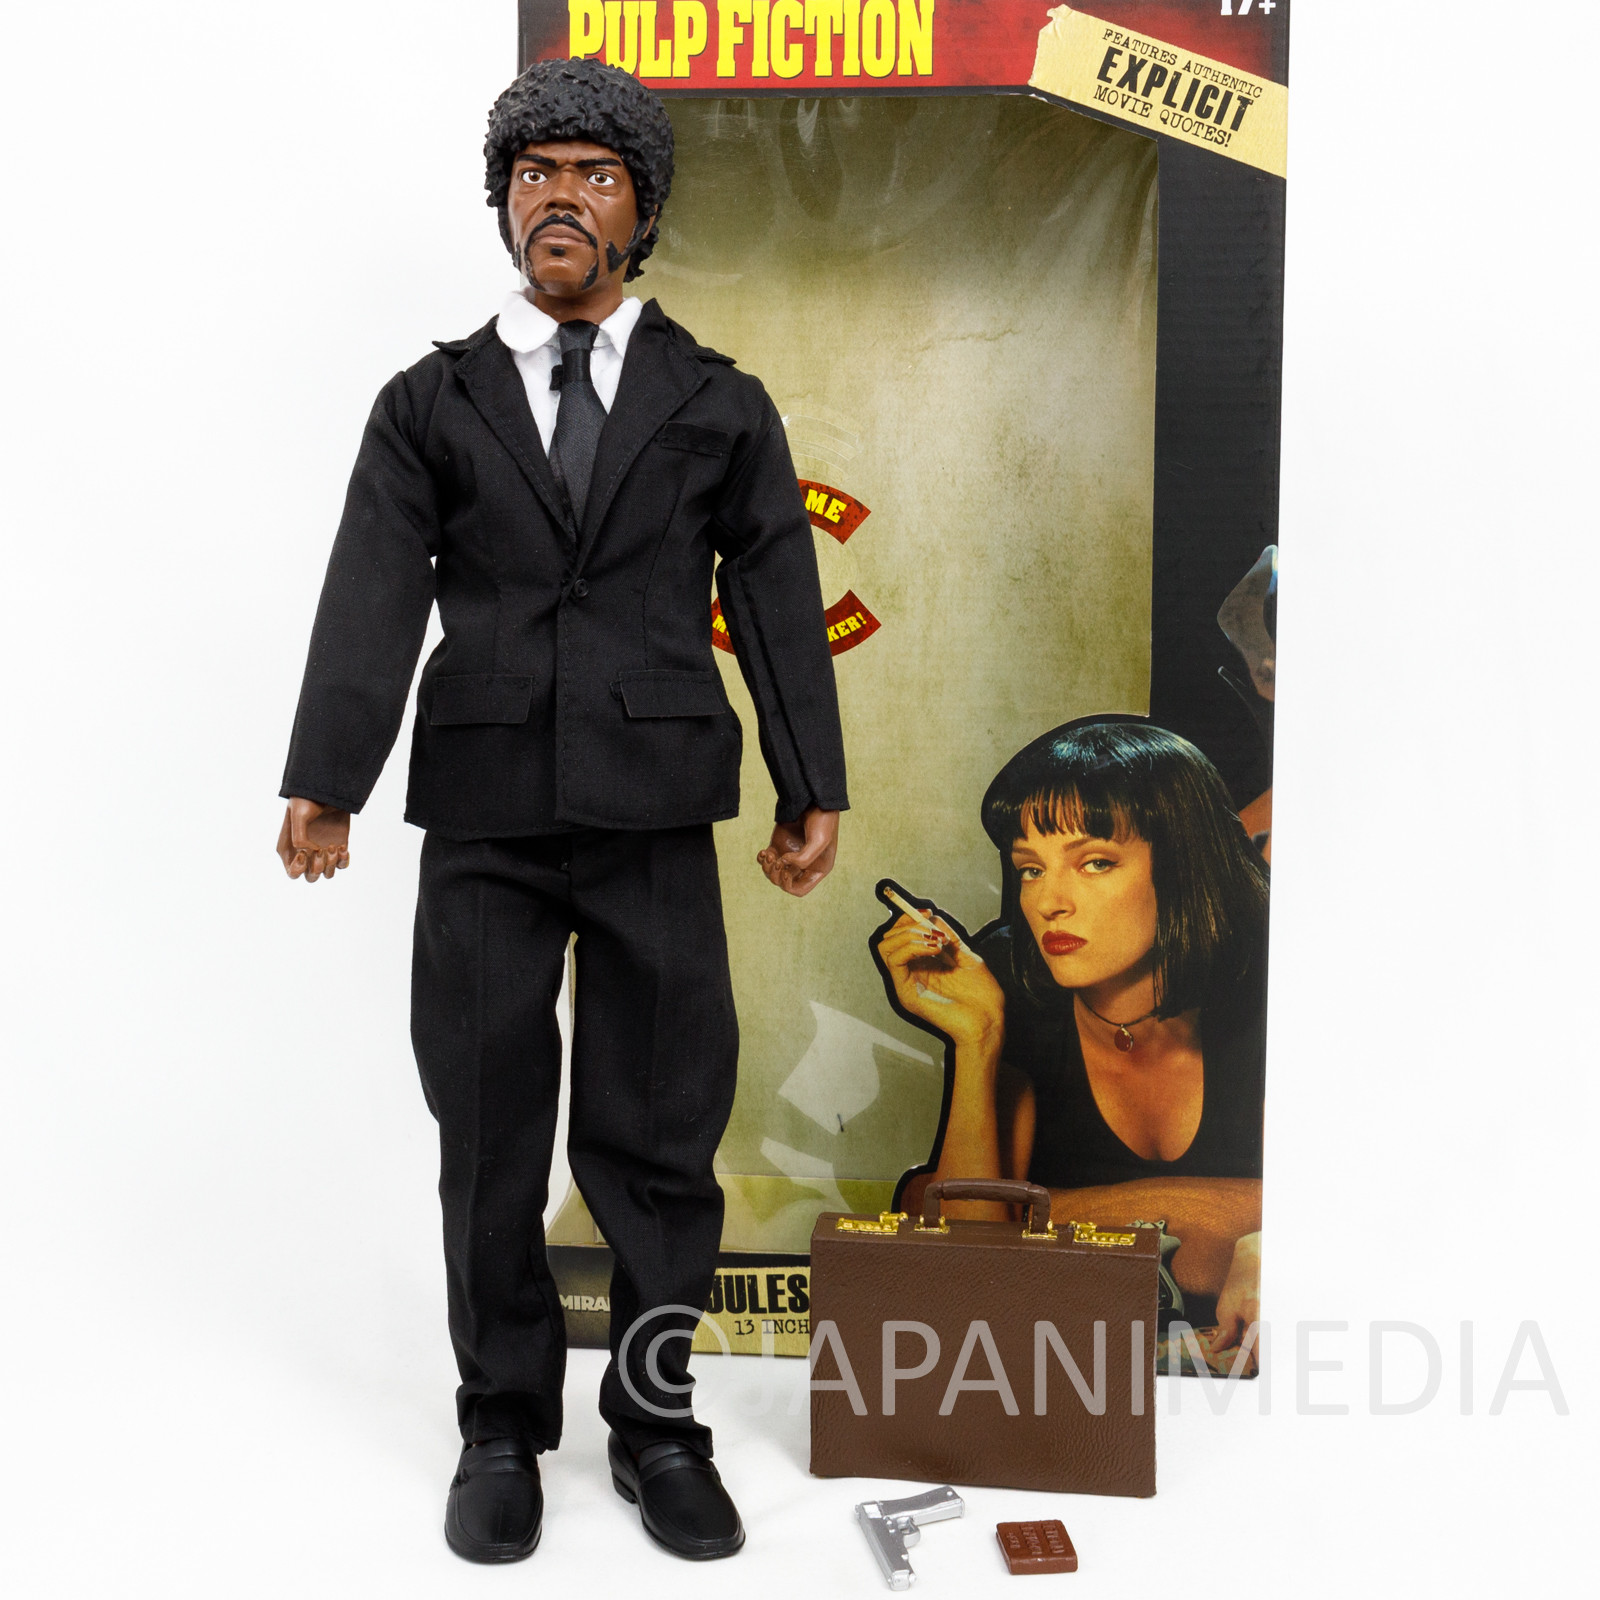 PULP FICTION Jules Winnfield 13 inch Talking Figure Miramax Samuel L. Jackson